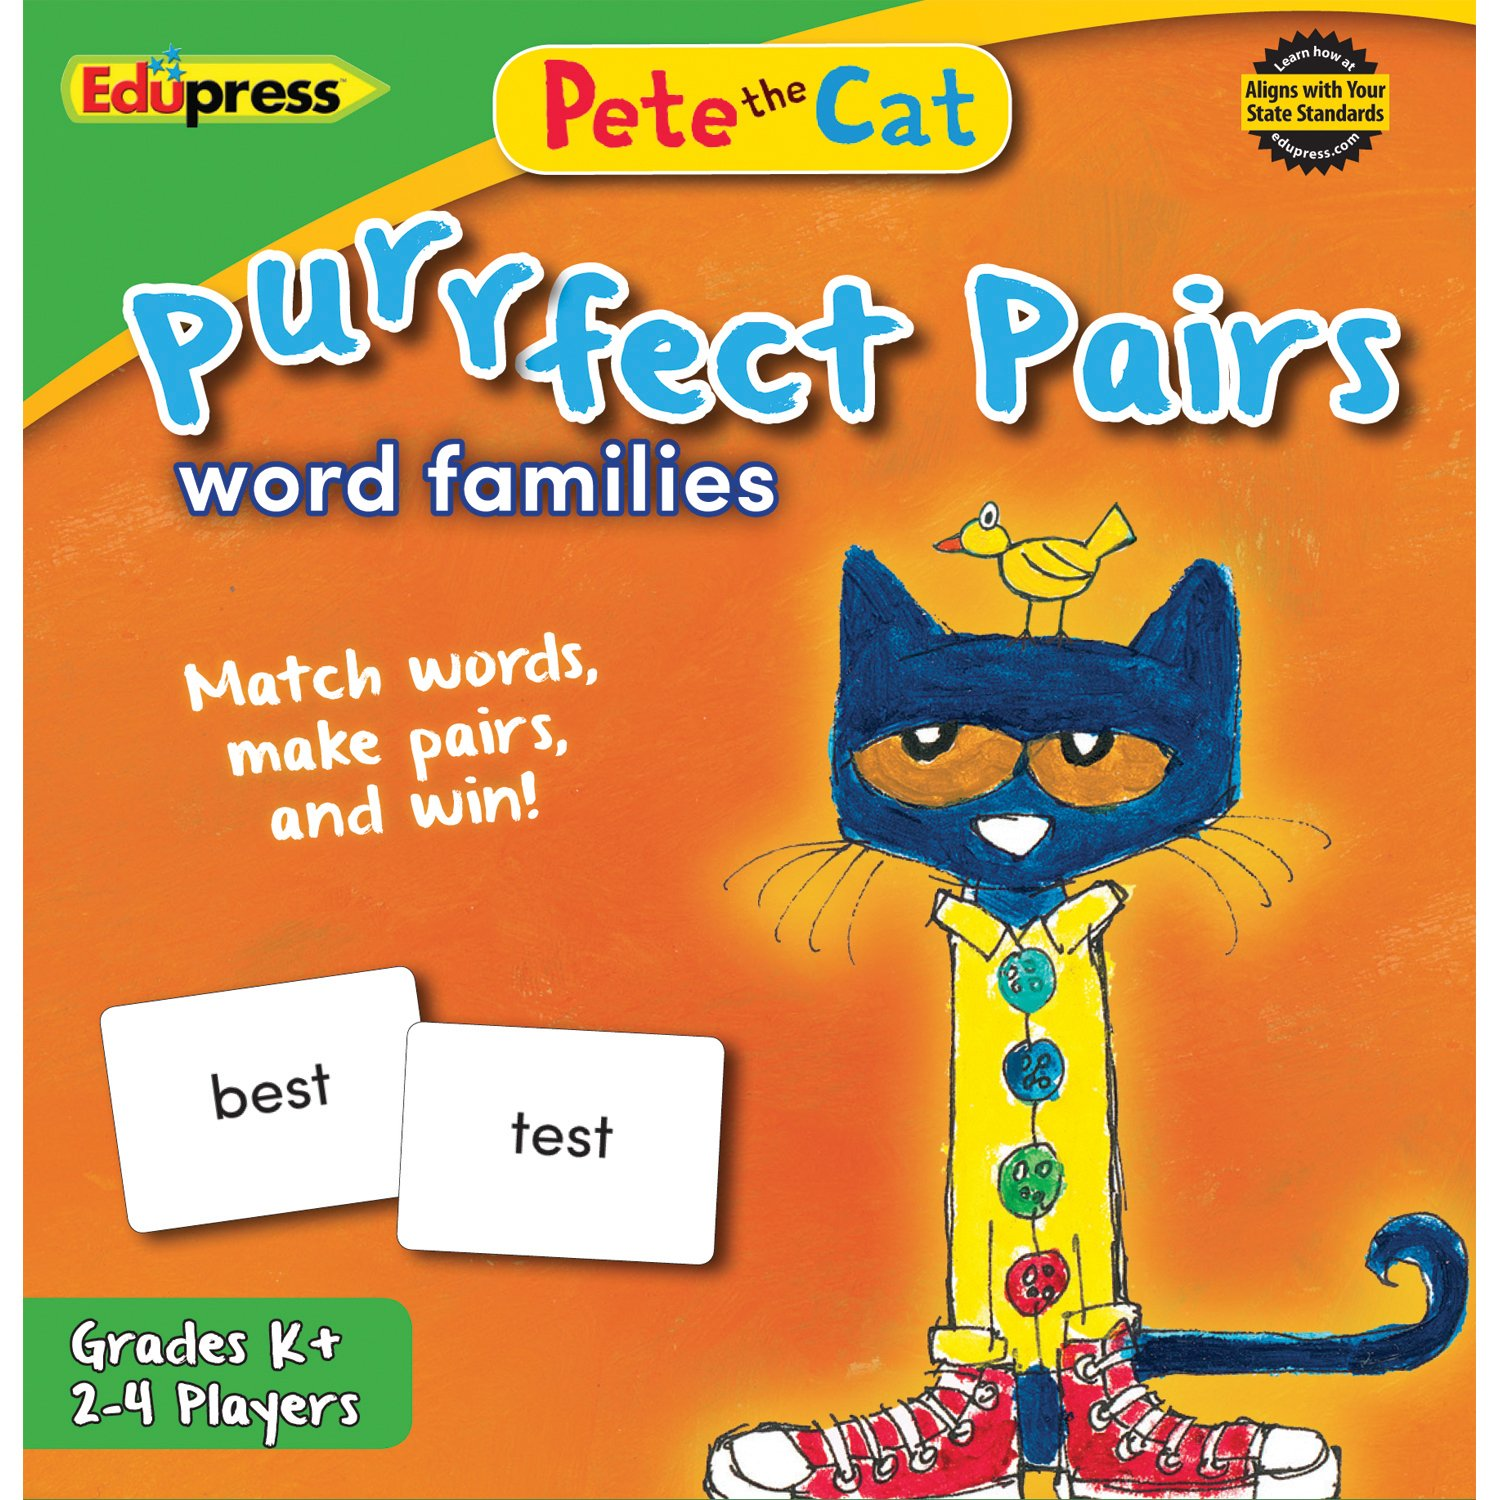 Teacher Created Resources OS EP63532 Word Families Pete the Cat Purrfect Pairs Game EP-3532